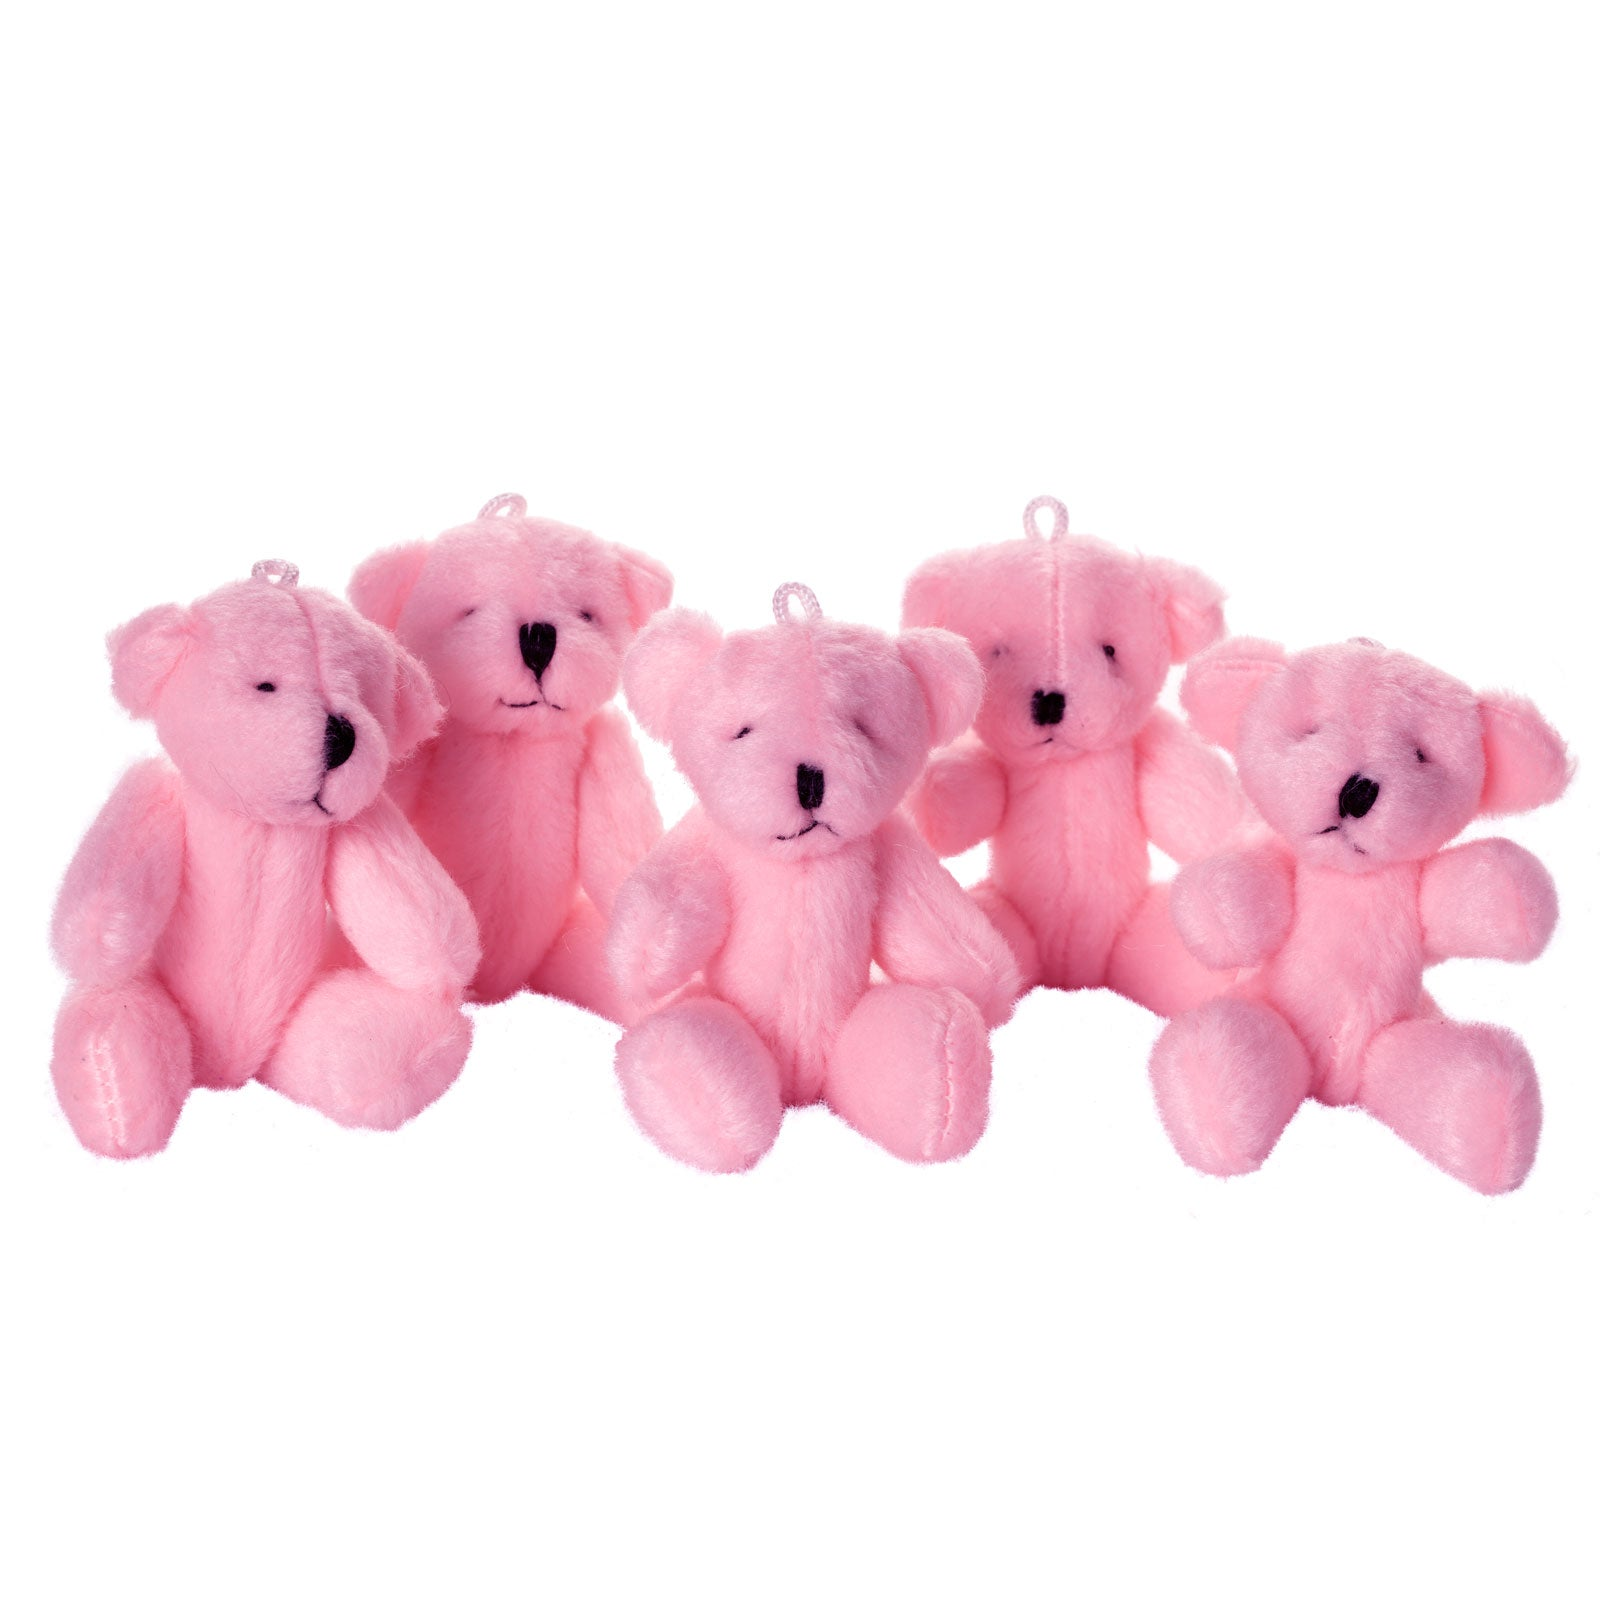 Small PINK Teddy Bears X 50 - Cute Soft Adorable